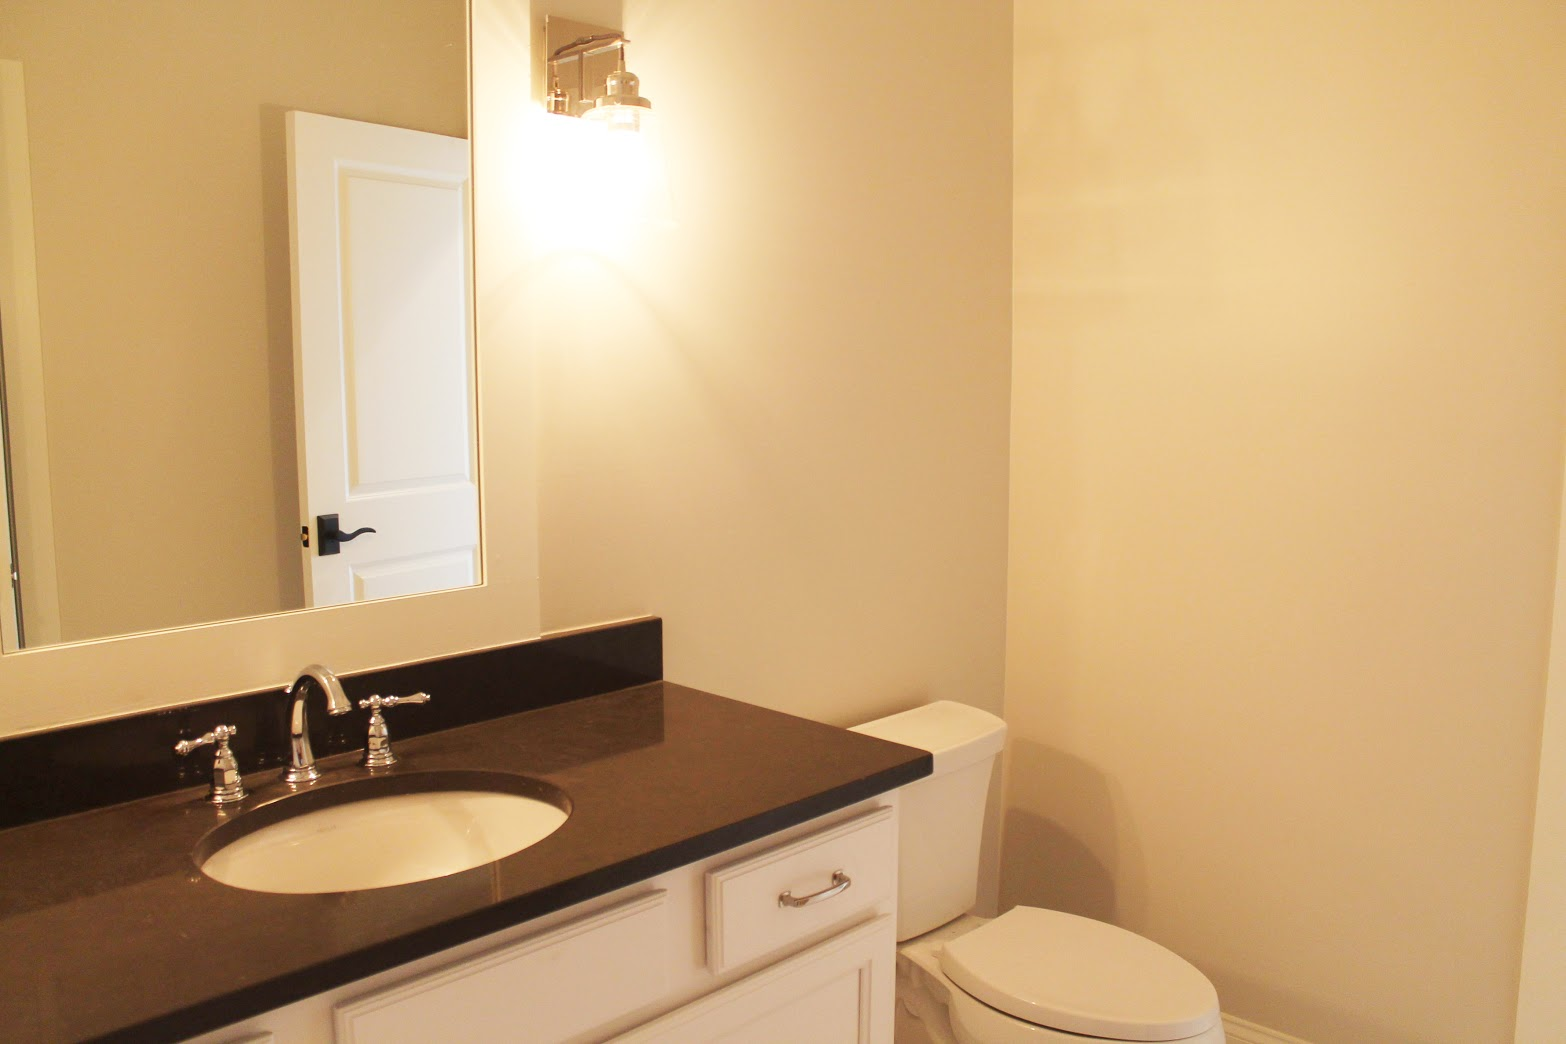 silestone bathroom countertops. Silestone Bath Bathroom Countertops T